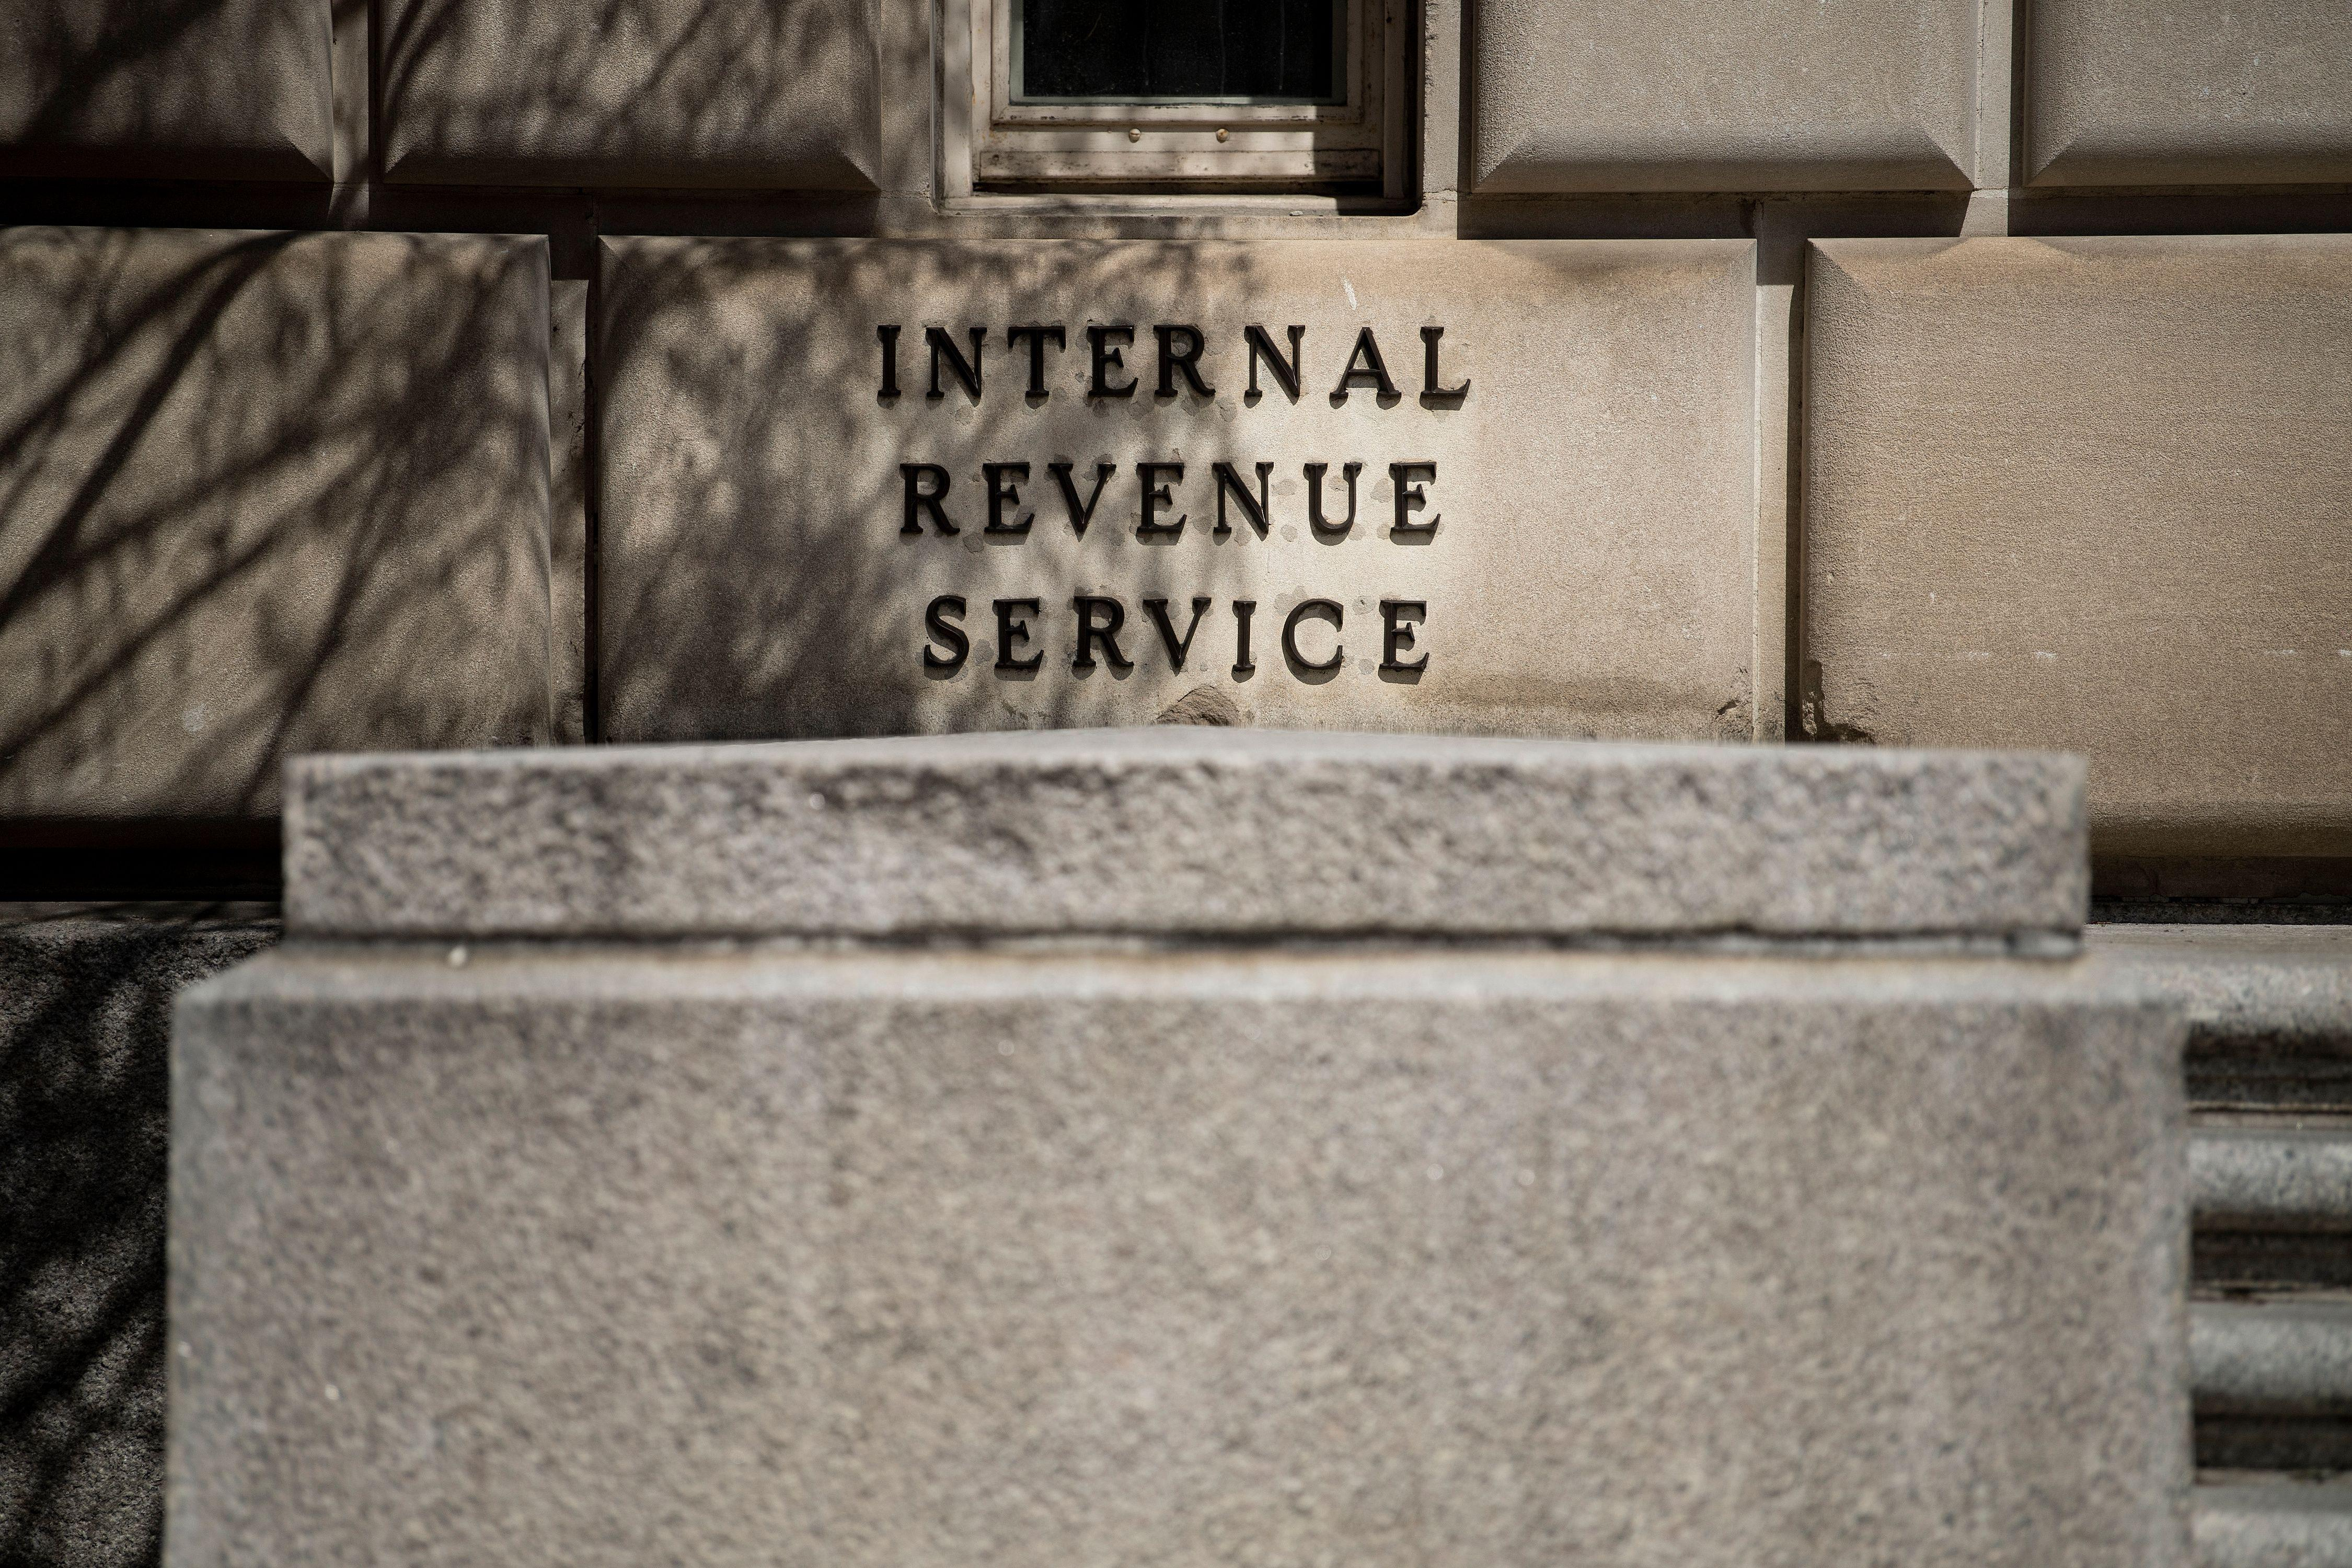 The Internal Revenue Service building on March 27, 2019, in Washington, DC.